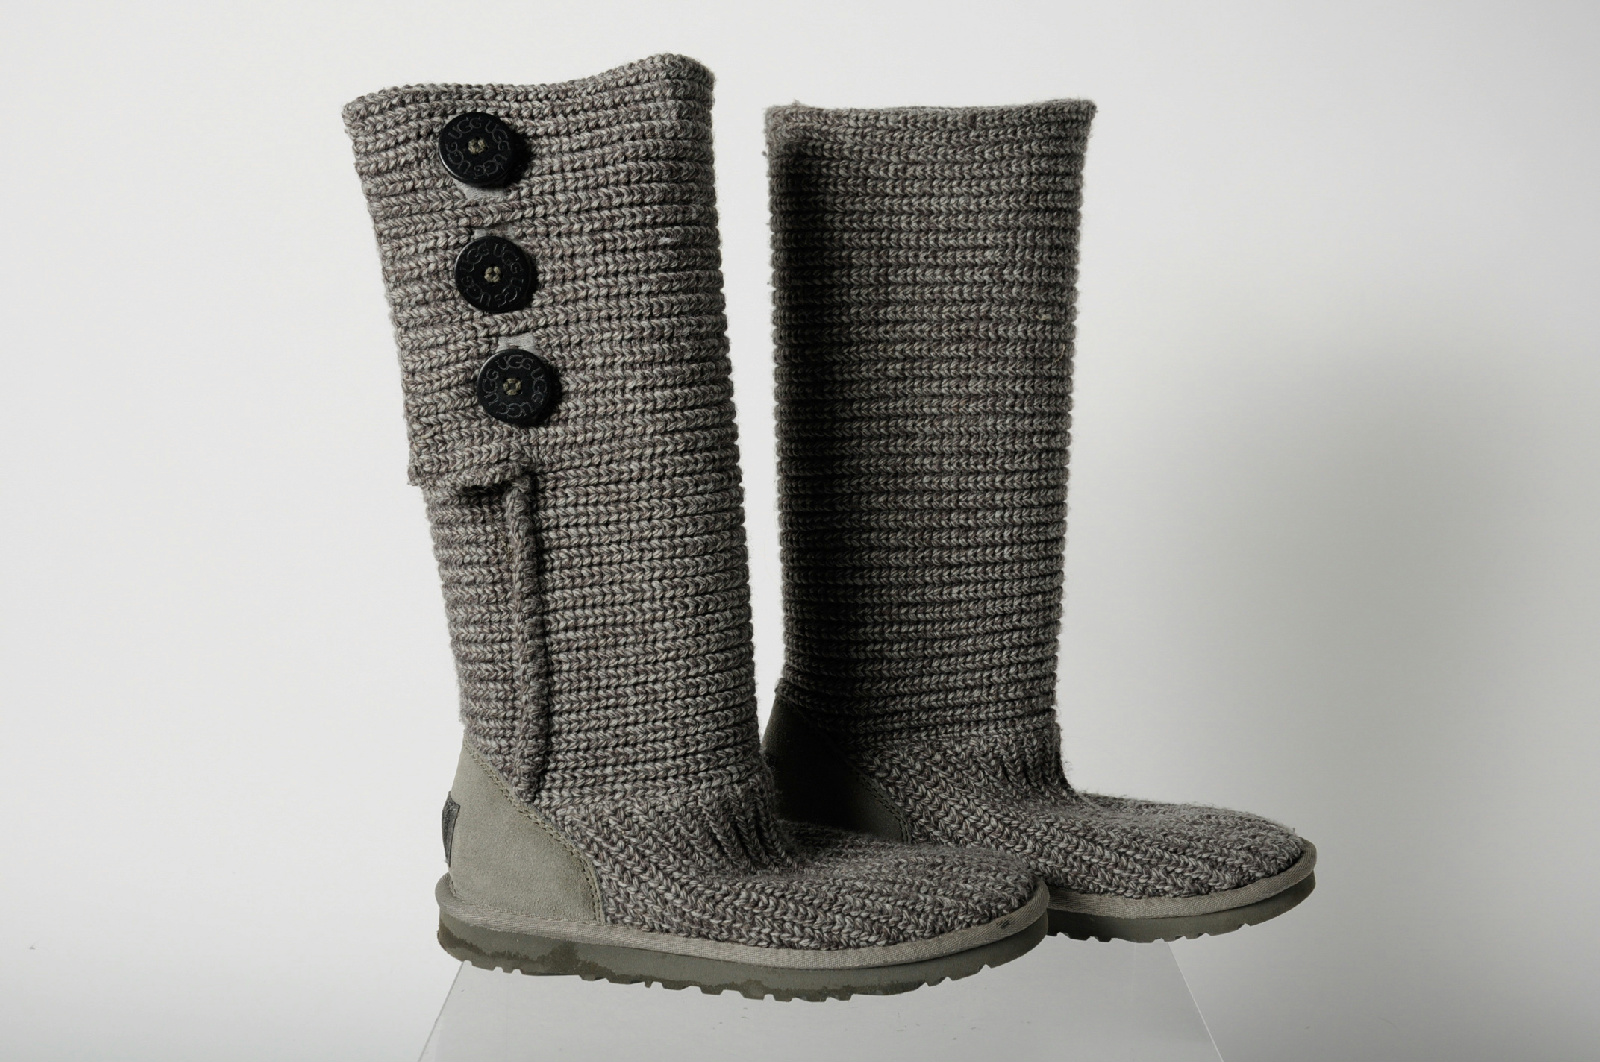 ugg classic cardy grey cable knit knee high winter